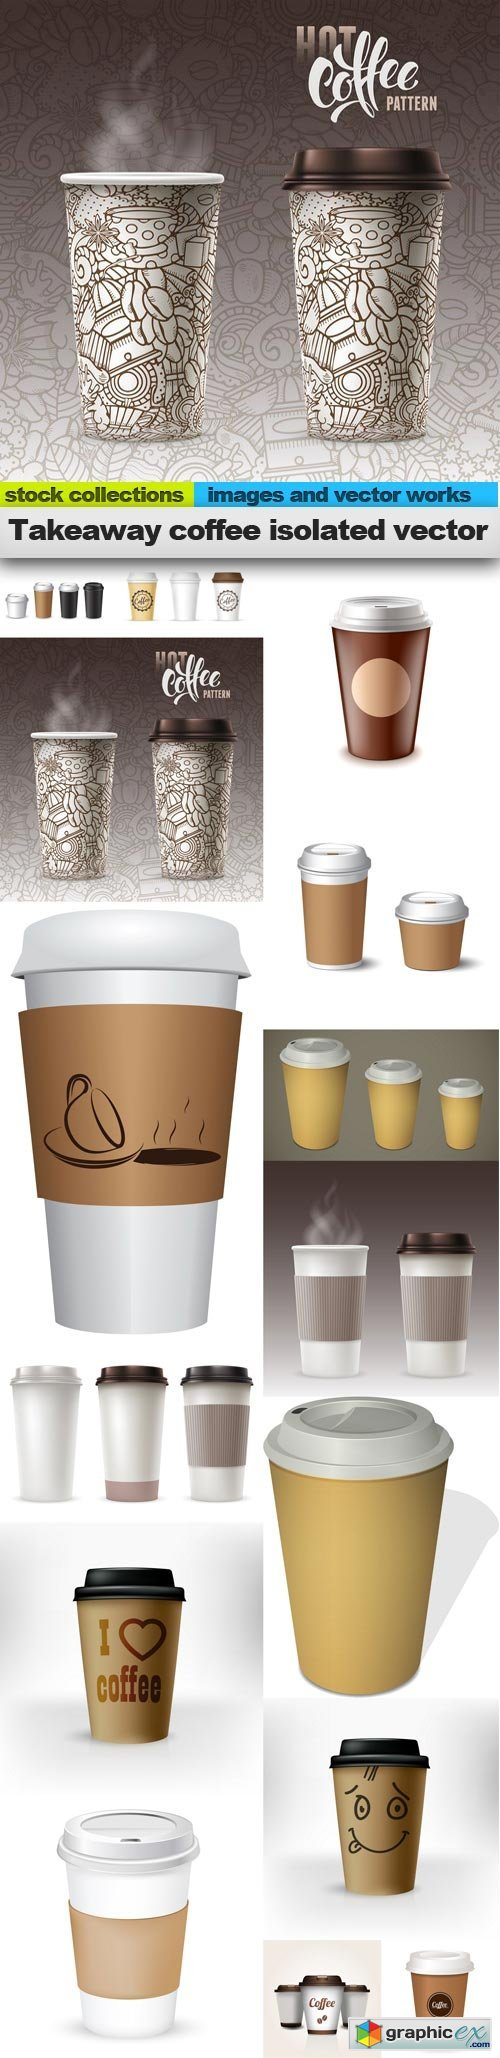 Takeaway coffee isolated vector, 15 x EPS